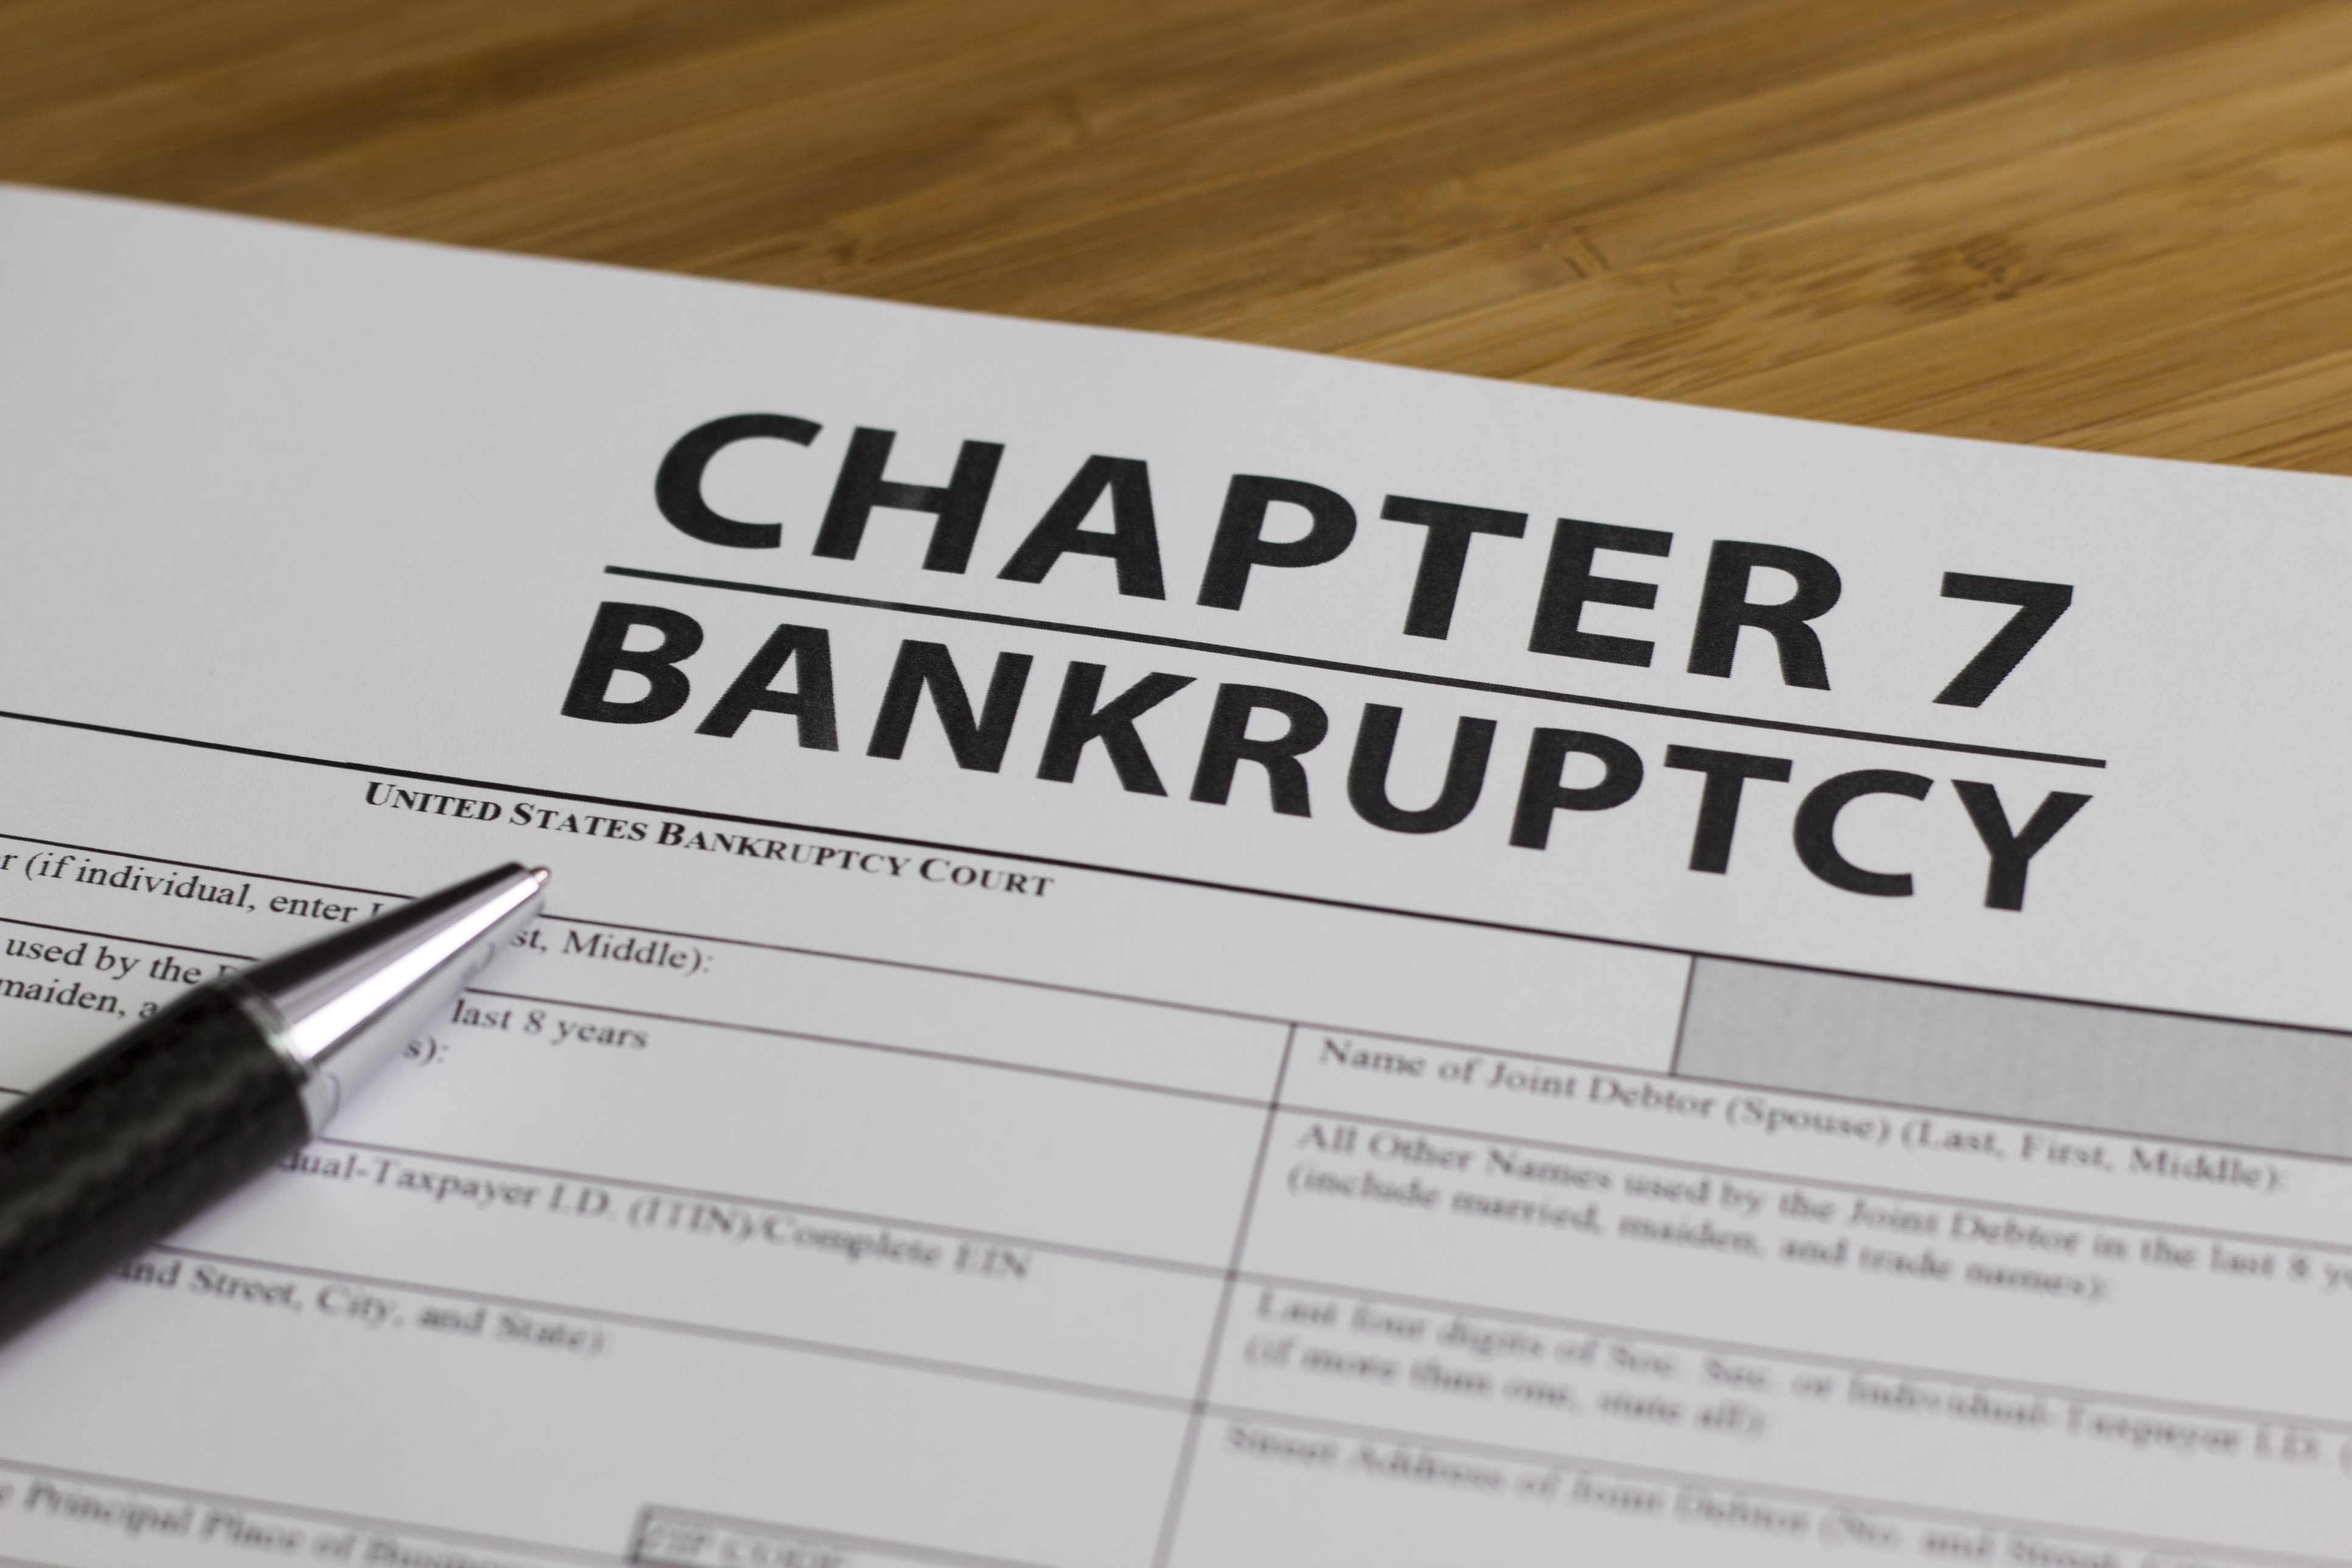 Chapter 7 bankruptcy petition.